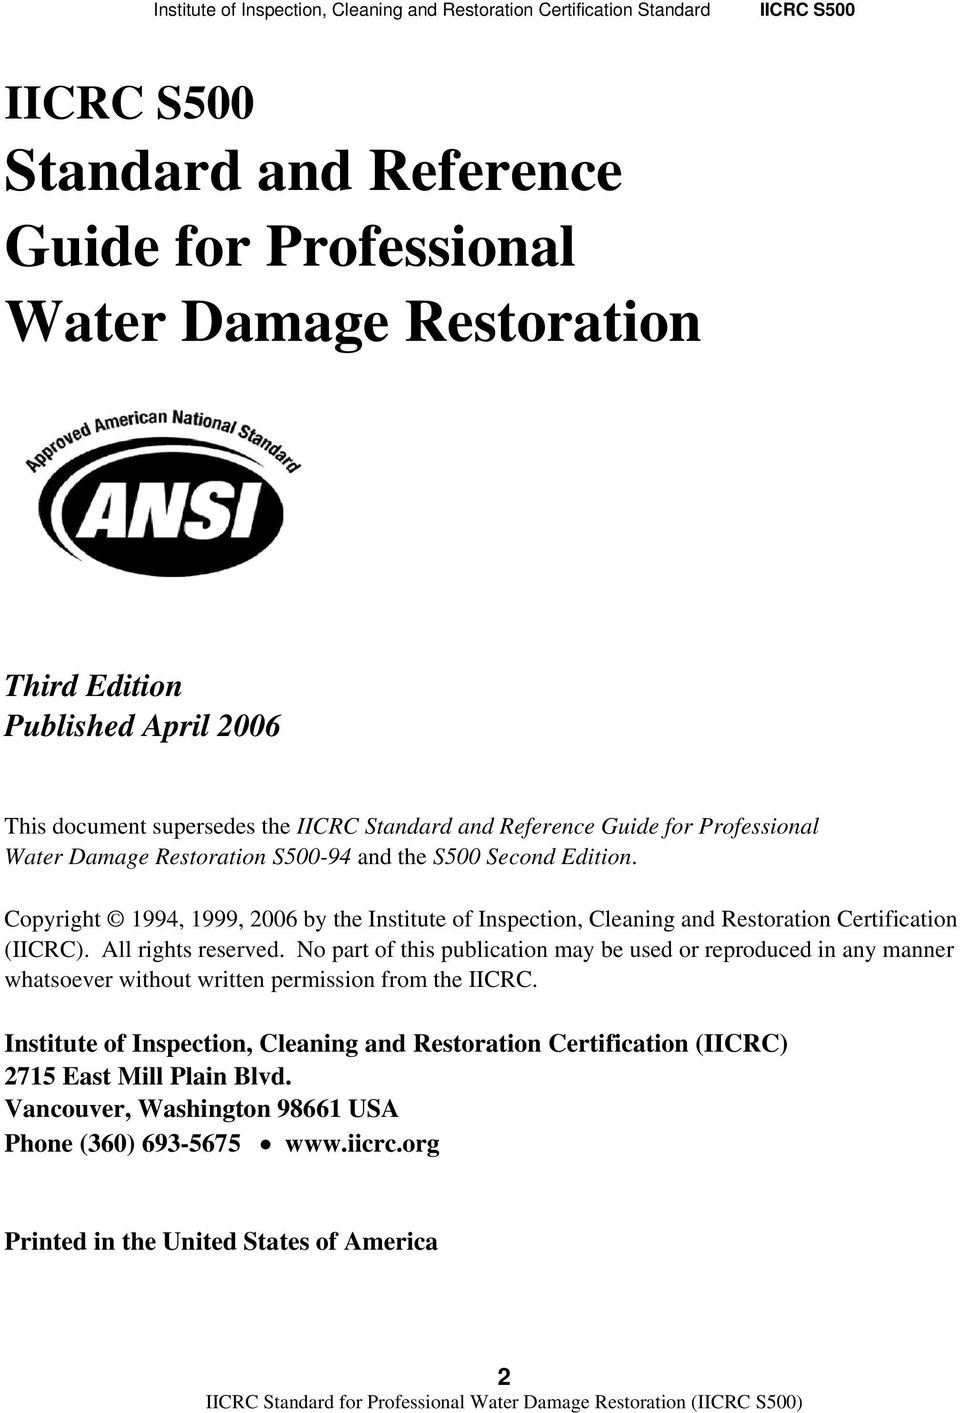 Iicrc S500 Standard And Reference Guide For Professional Water